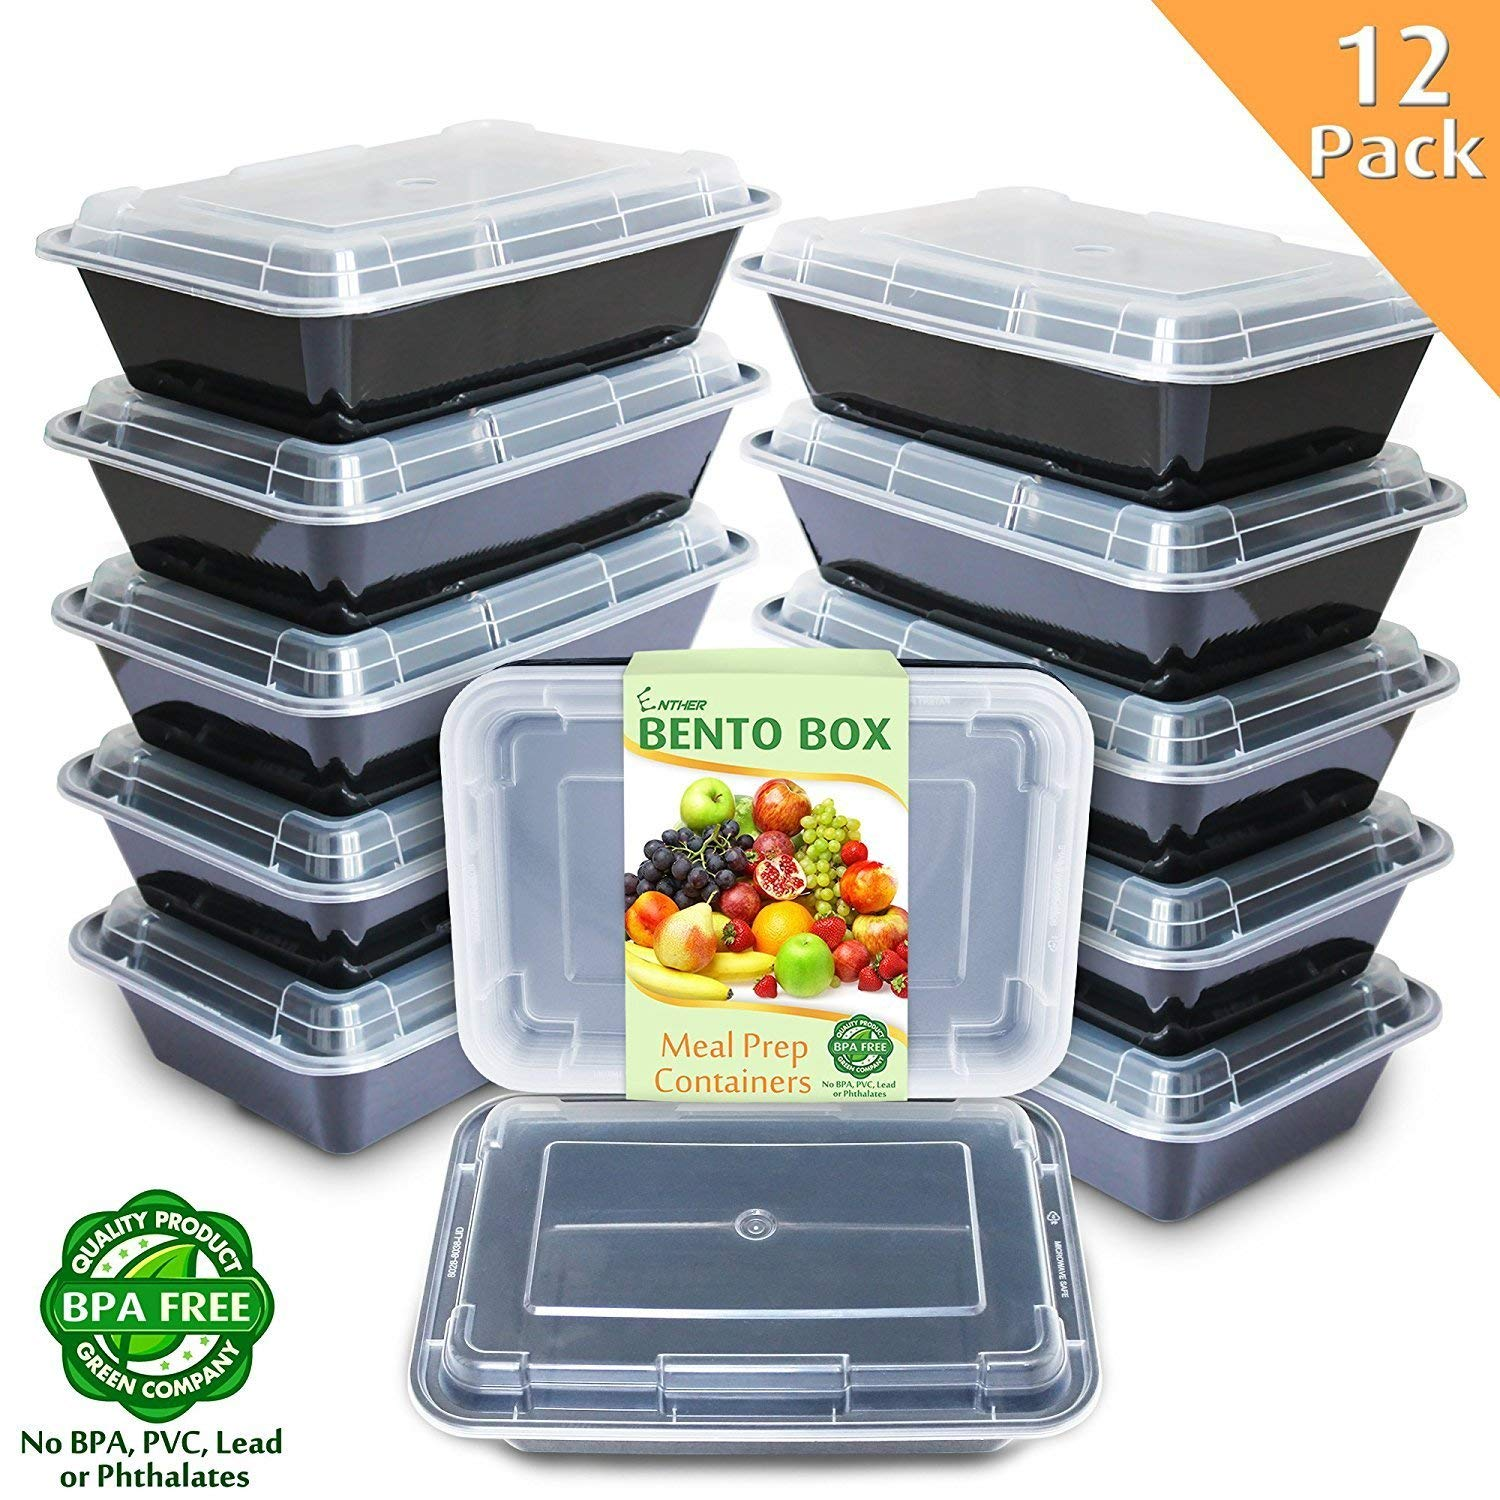 Enther Meal Prep Containers [20 Pack] Single 1 Compartment with Lids, Food Storage Bento Box | BPA Free | Stackable | Reusable Lunch Boxes, Microwave/Dishwasher/Freezer Safe,Portion Control (28 oz) 1CPTX20